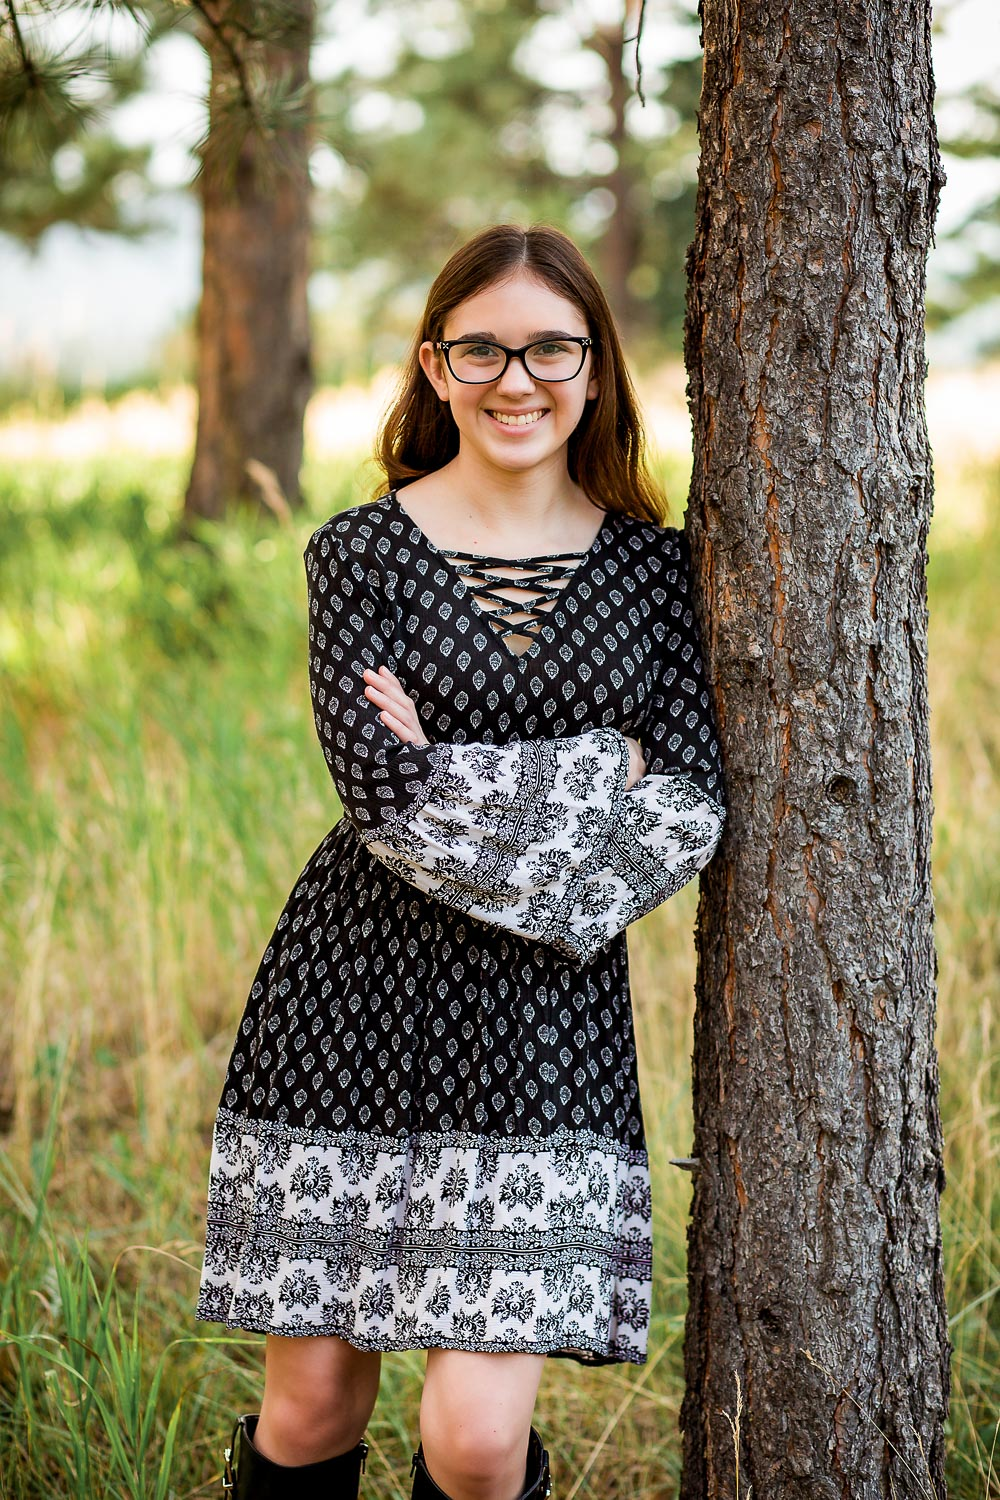 denver_senior_portrait_photographer_kathleen_bracken_photography-22.jpg